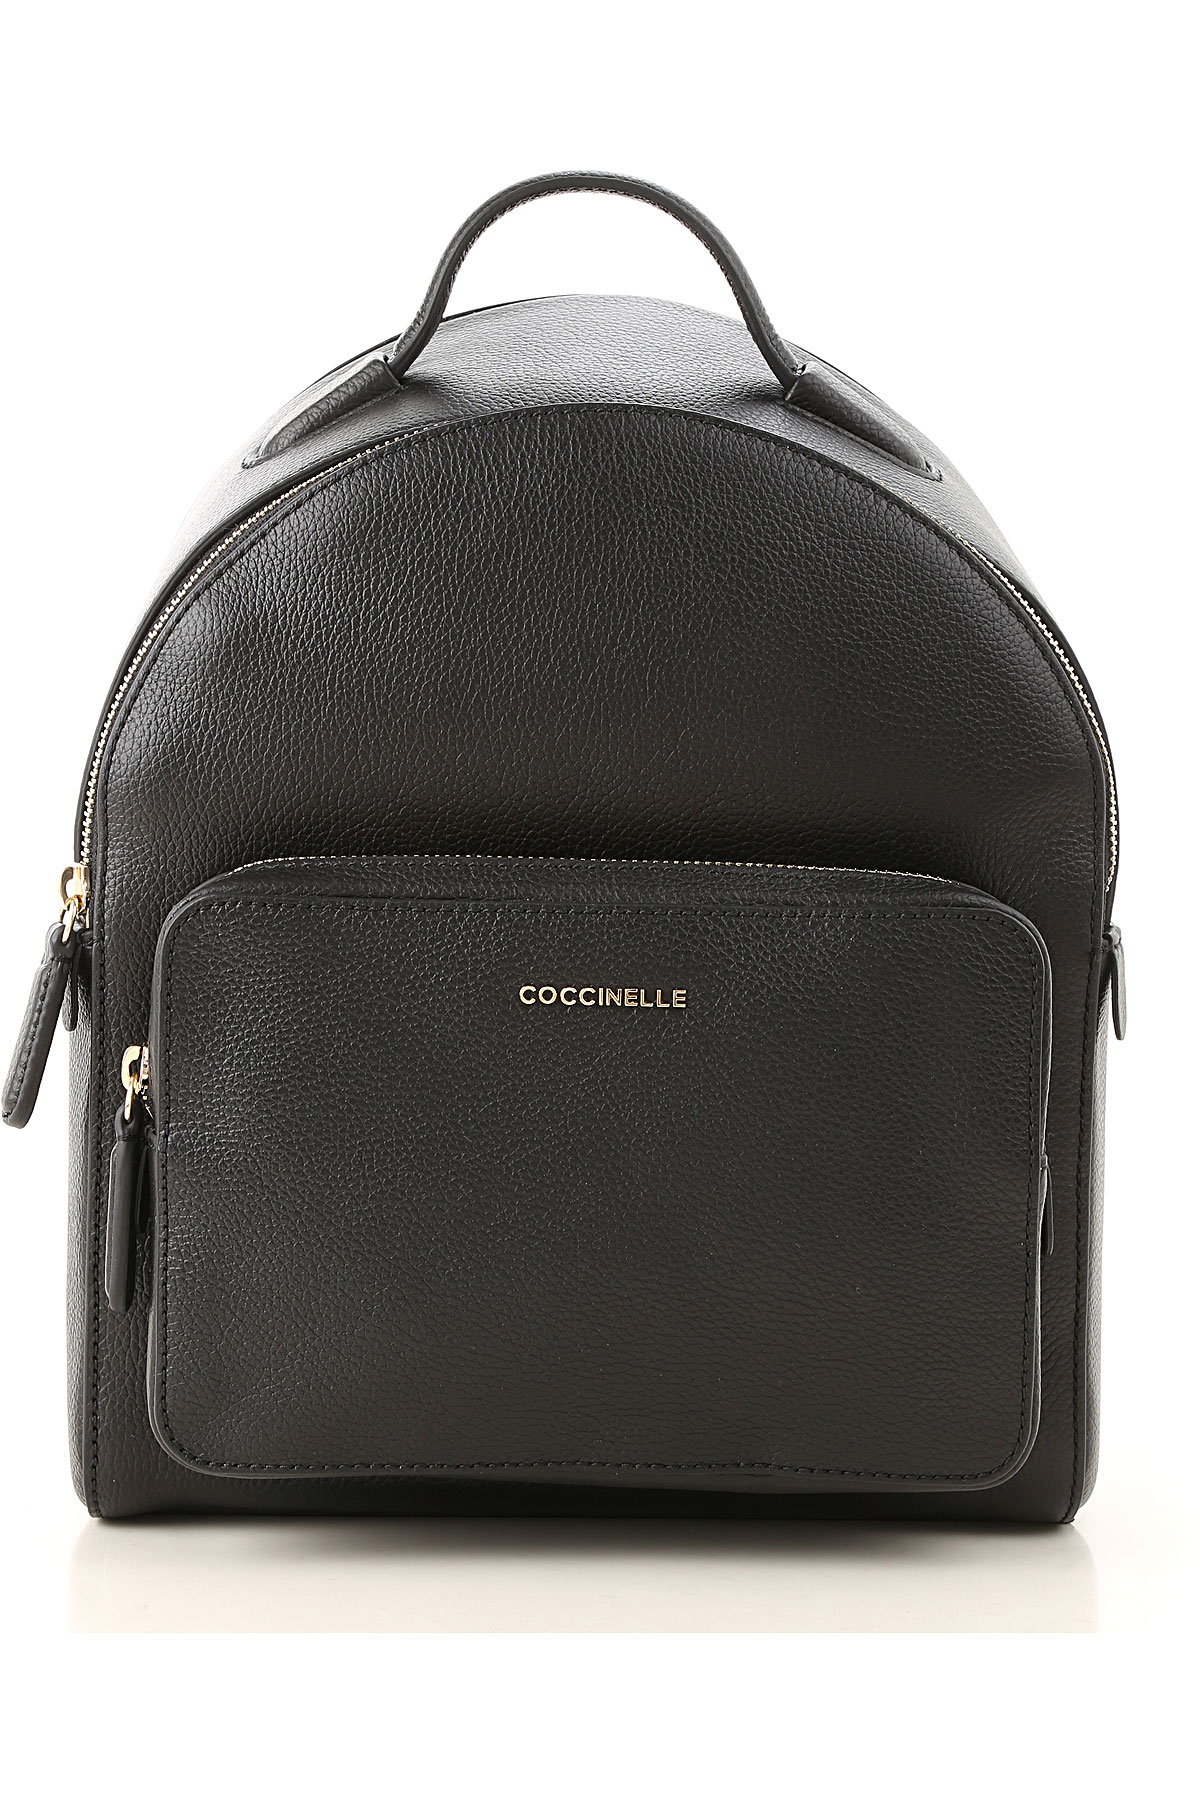 Image of Coccinelle Backpack for Women, Black, Leather, 2017